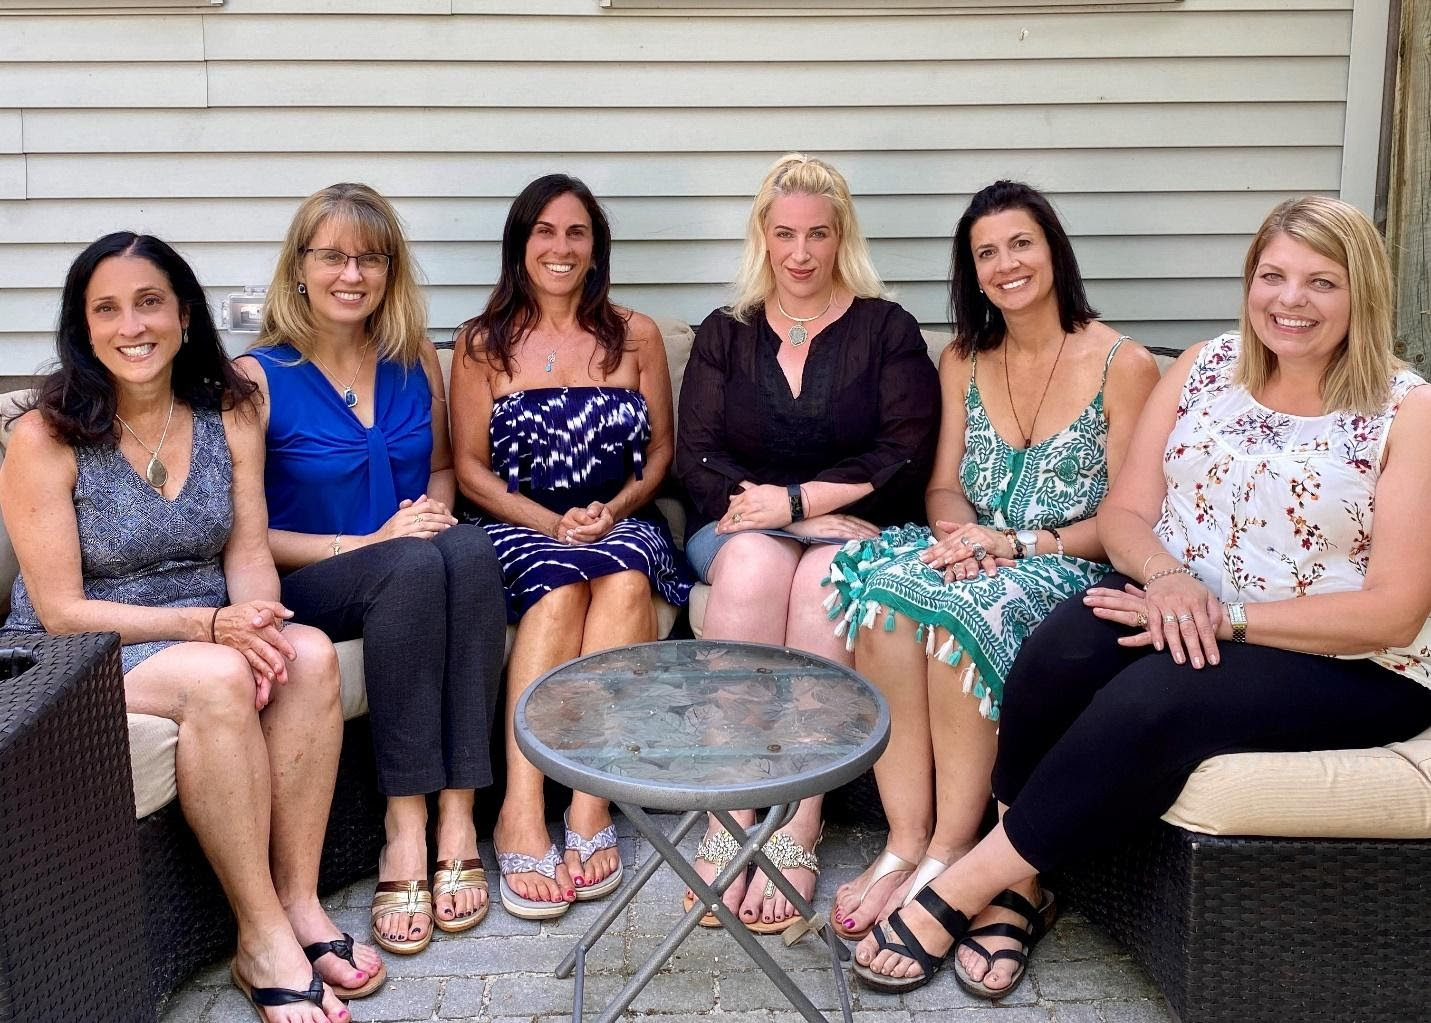 Image courtesy of The Center for Hope, WNY